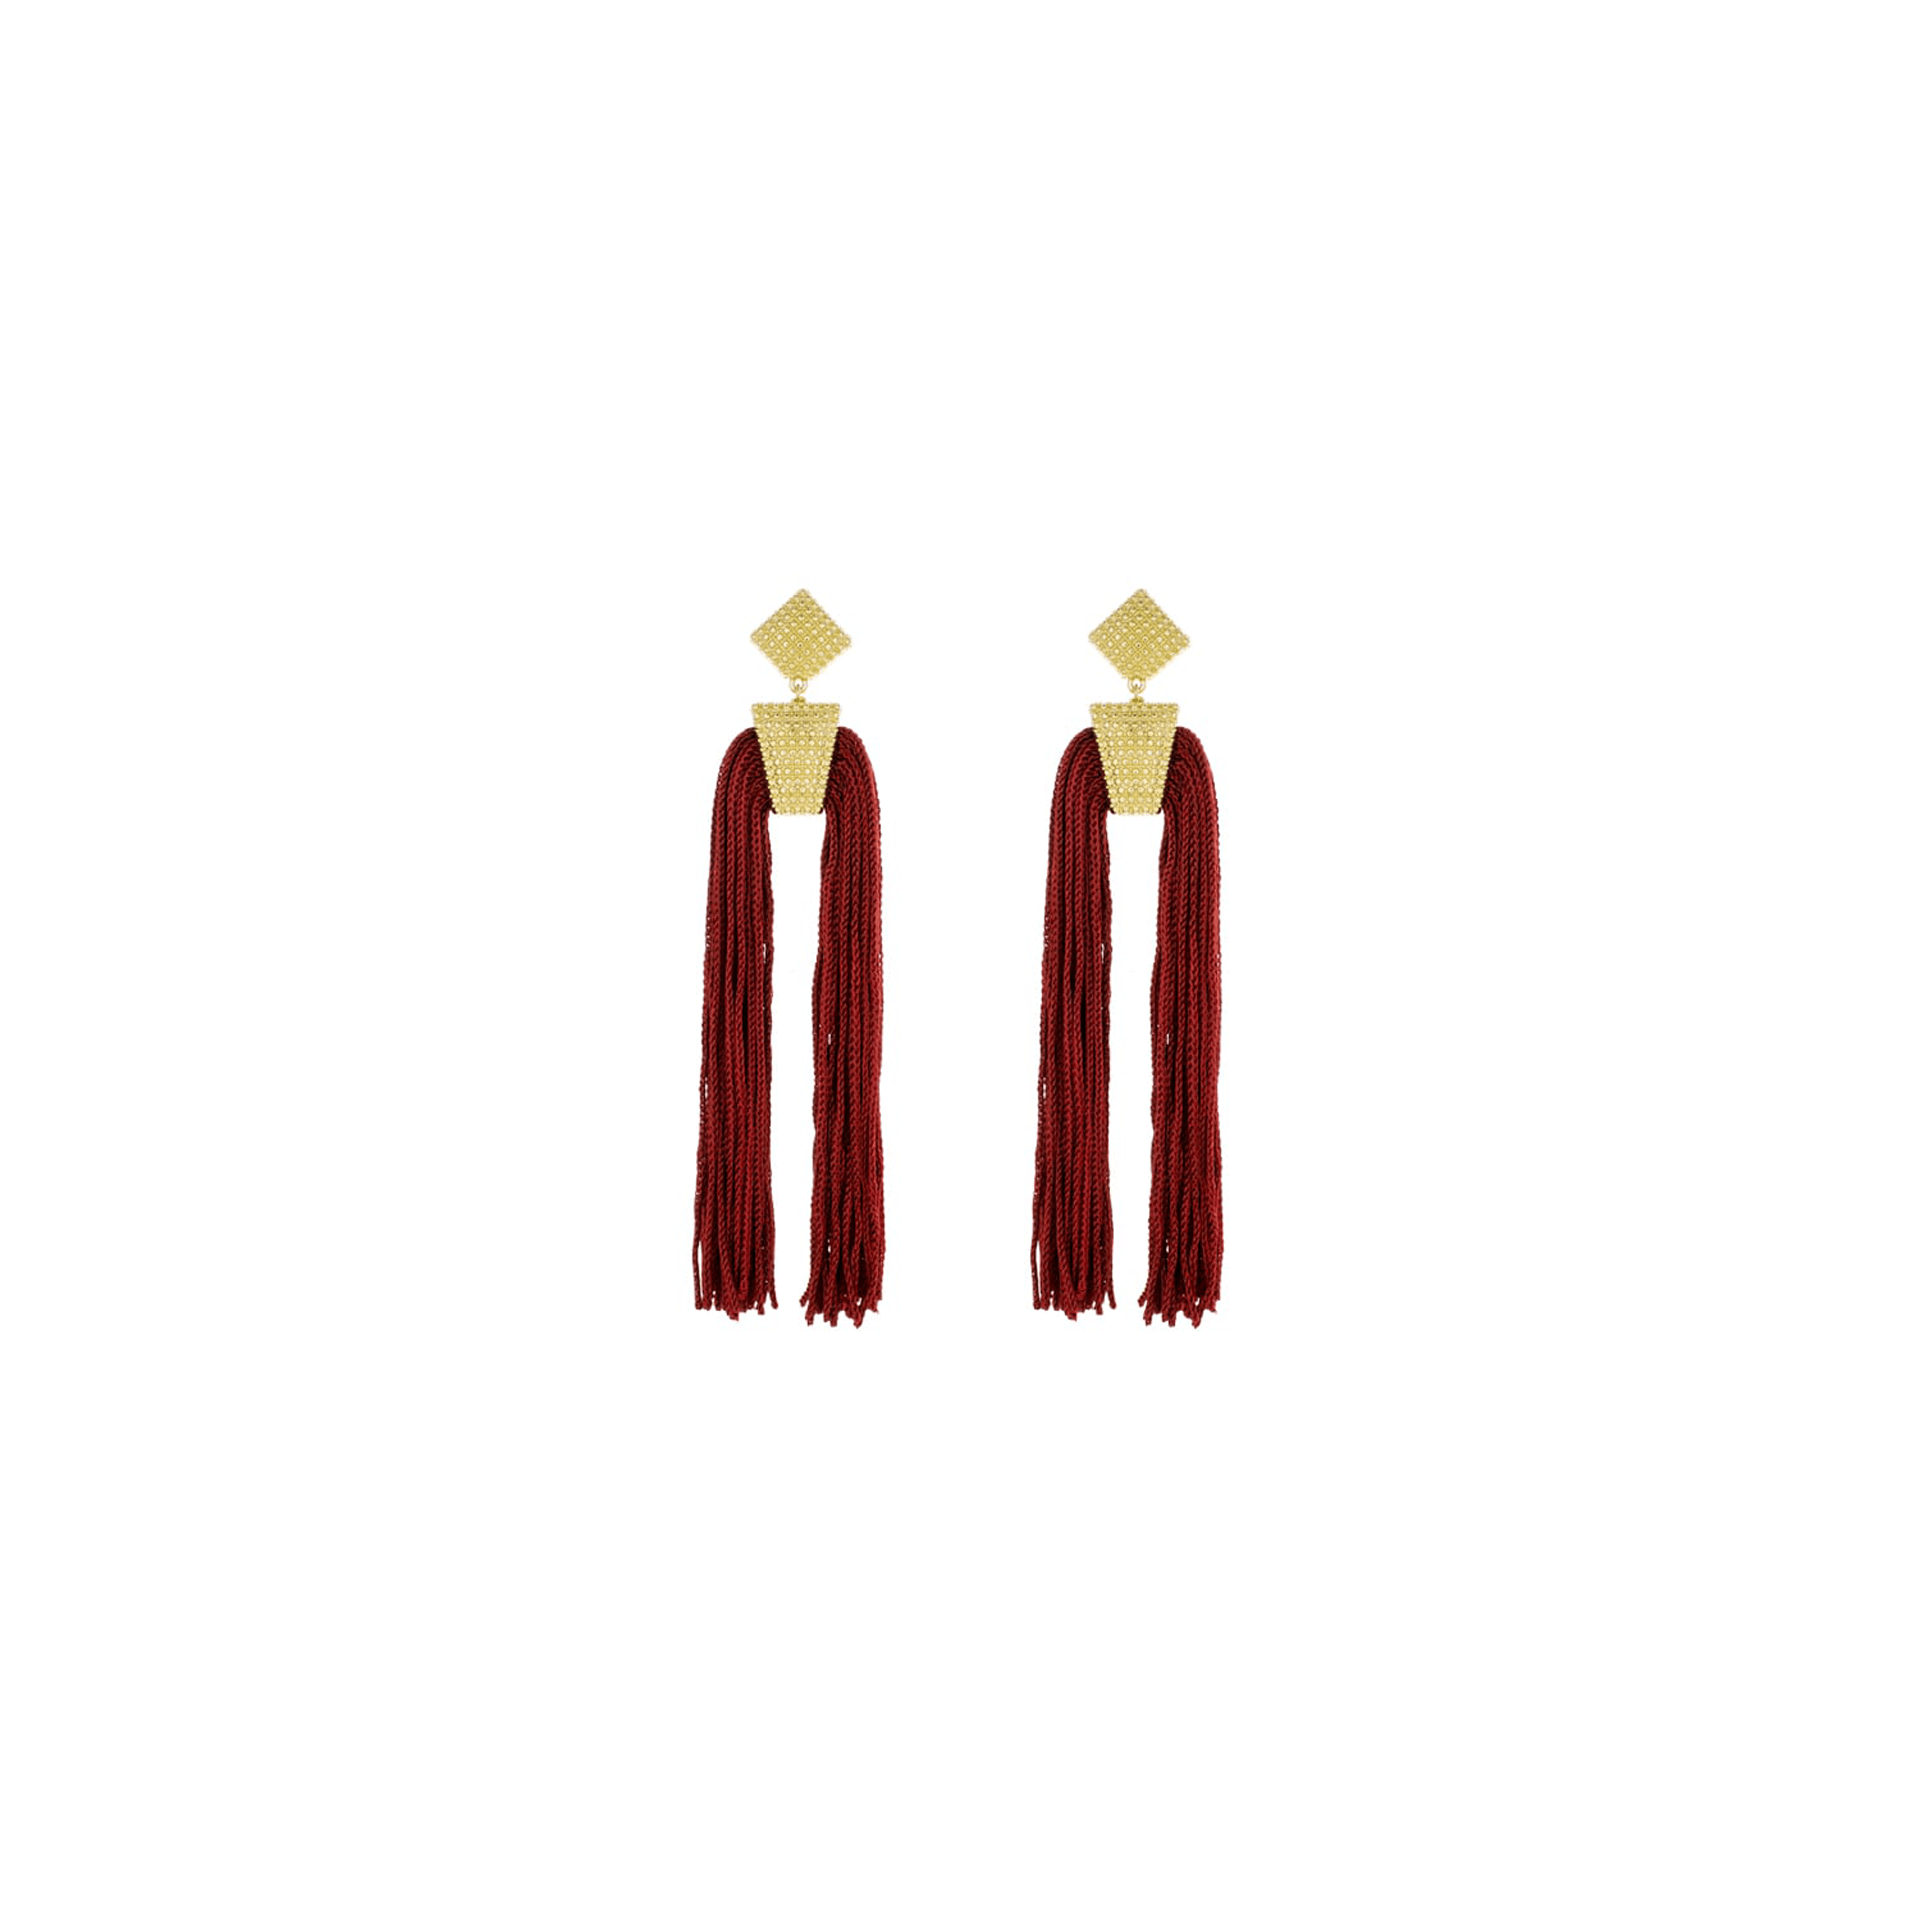 Tassel Earrings For Christmas